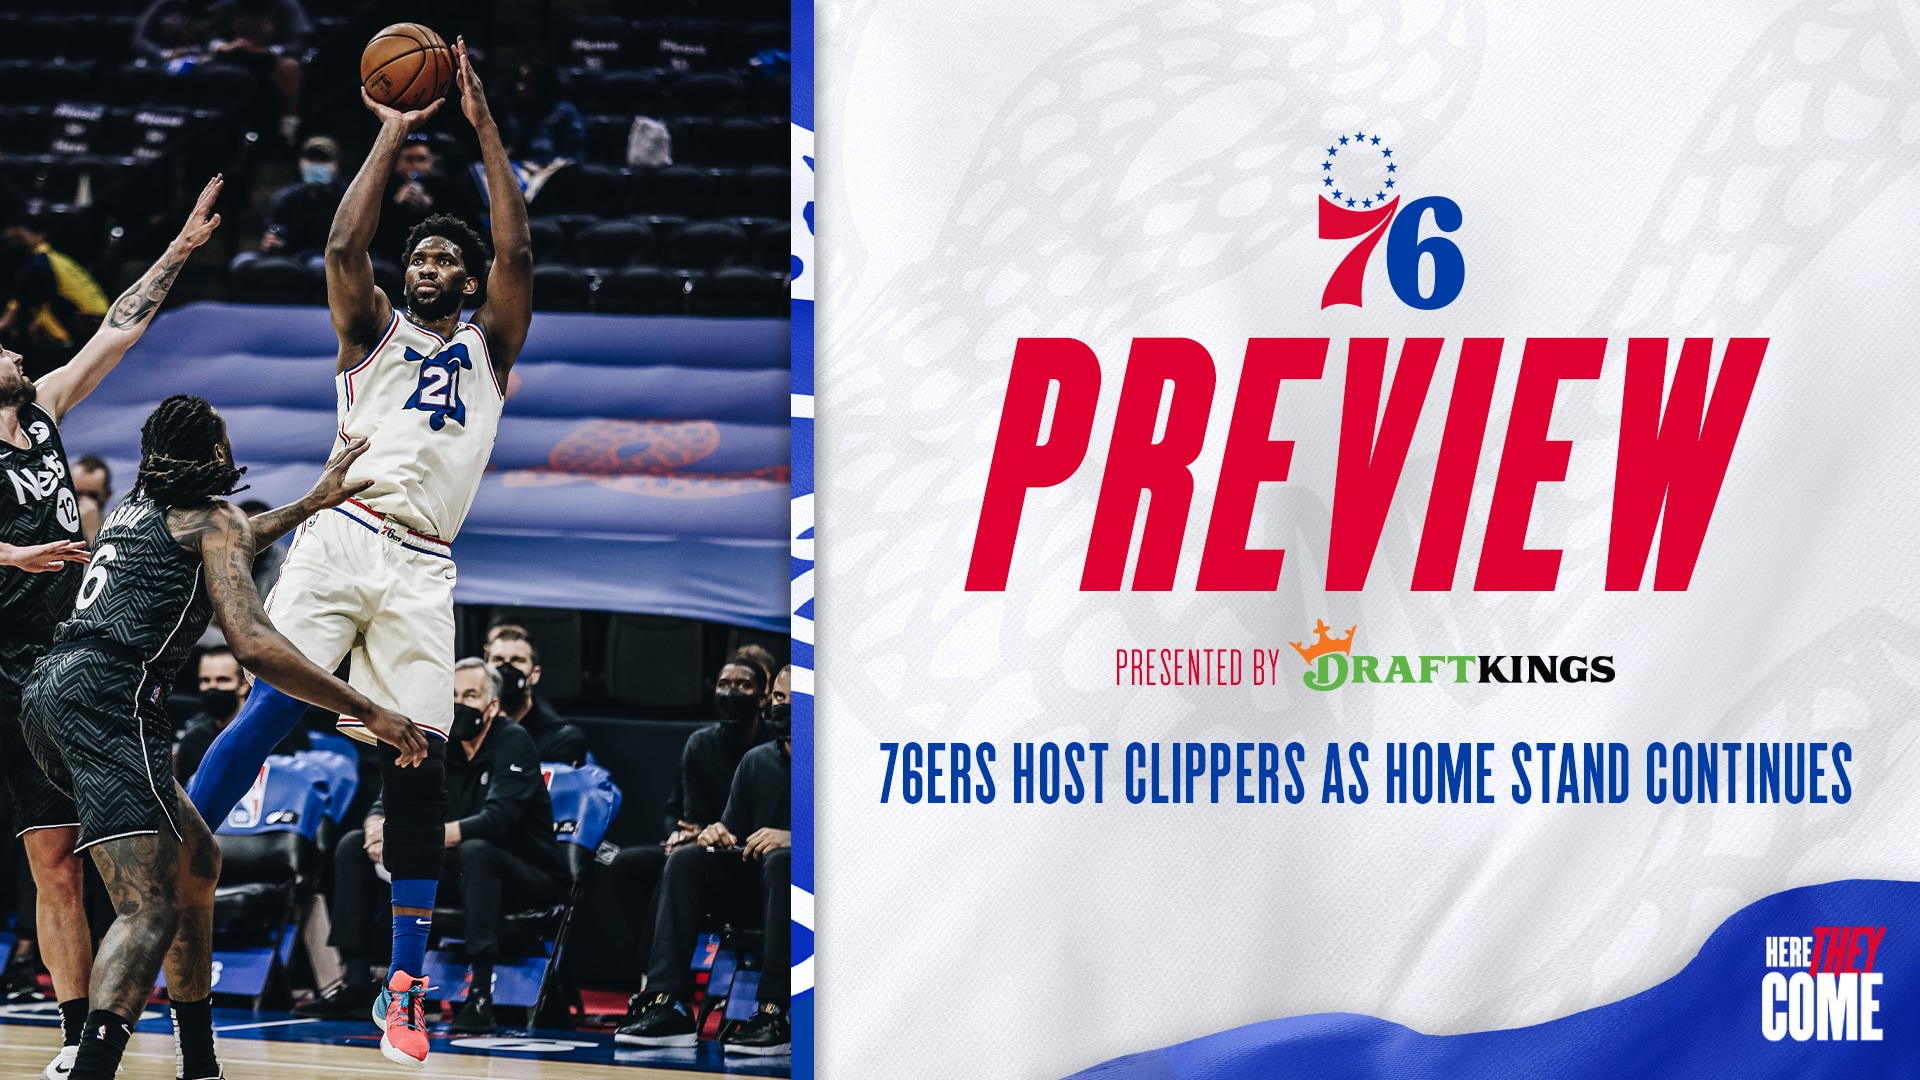 76ers Host Clippers as Home Stand Continues